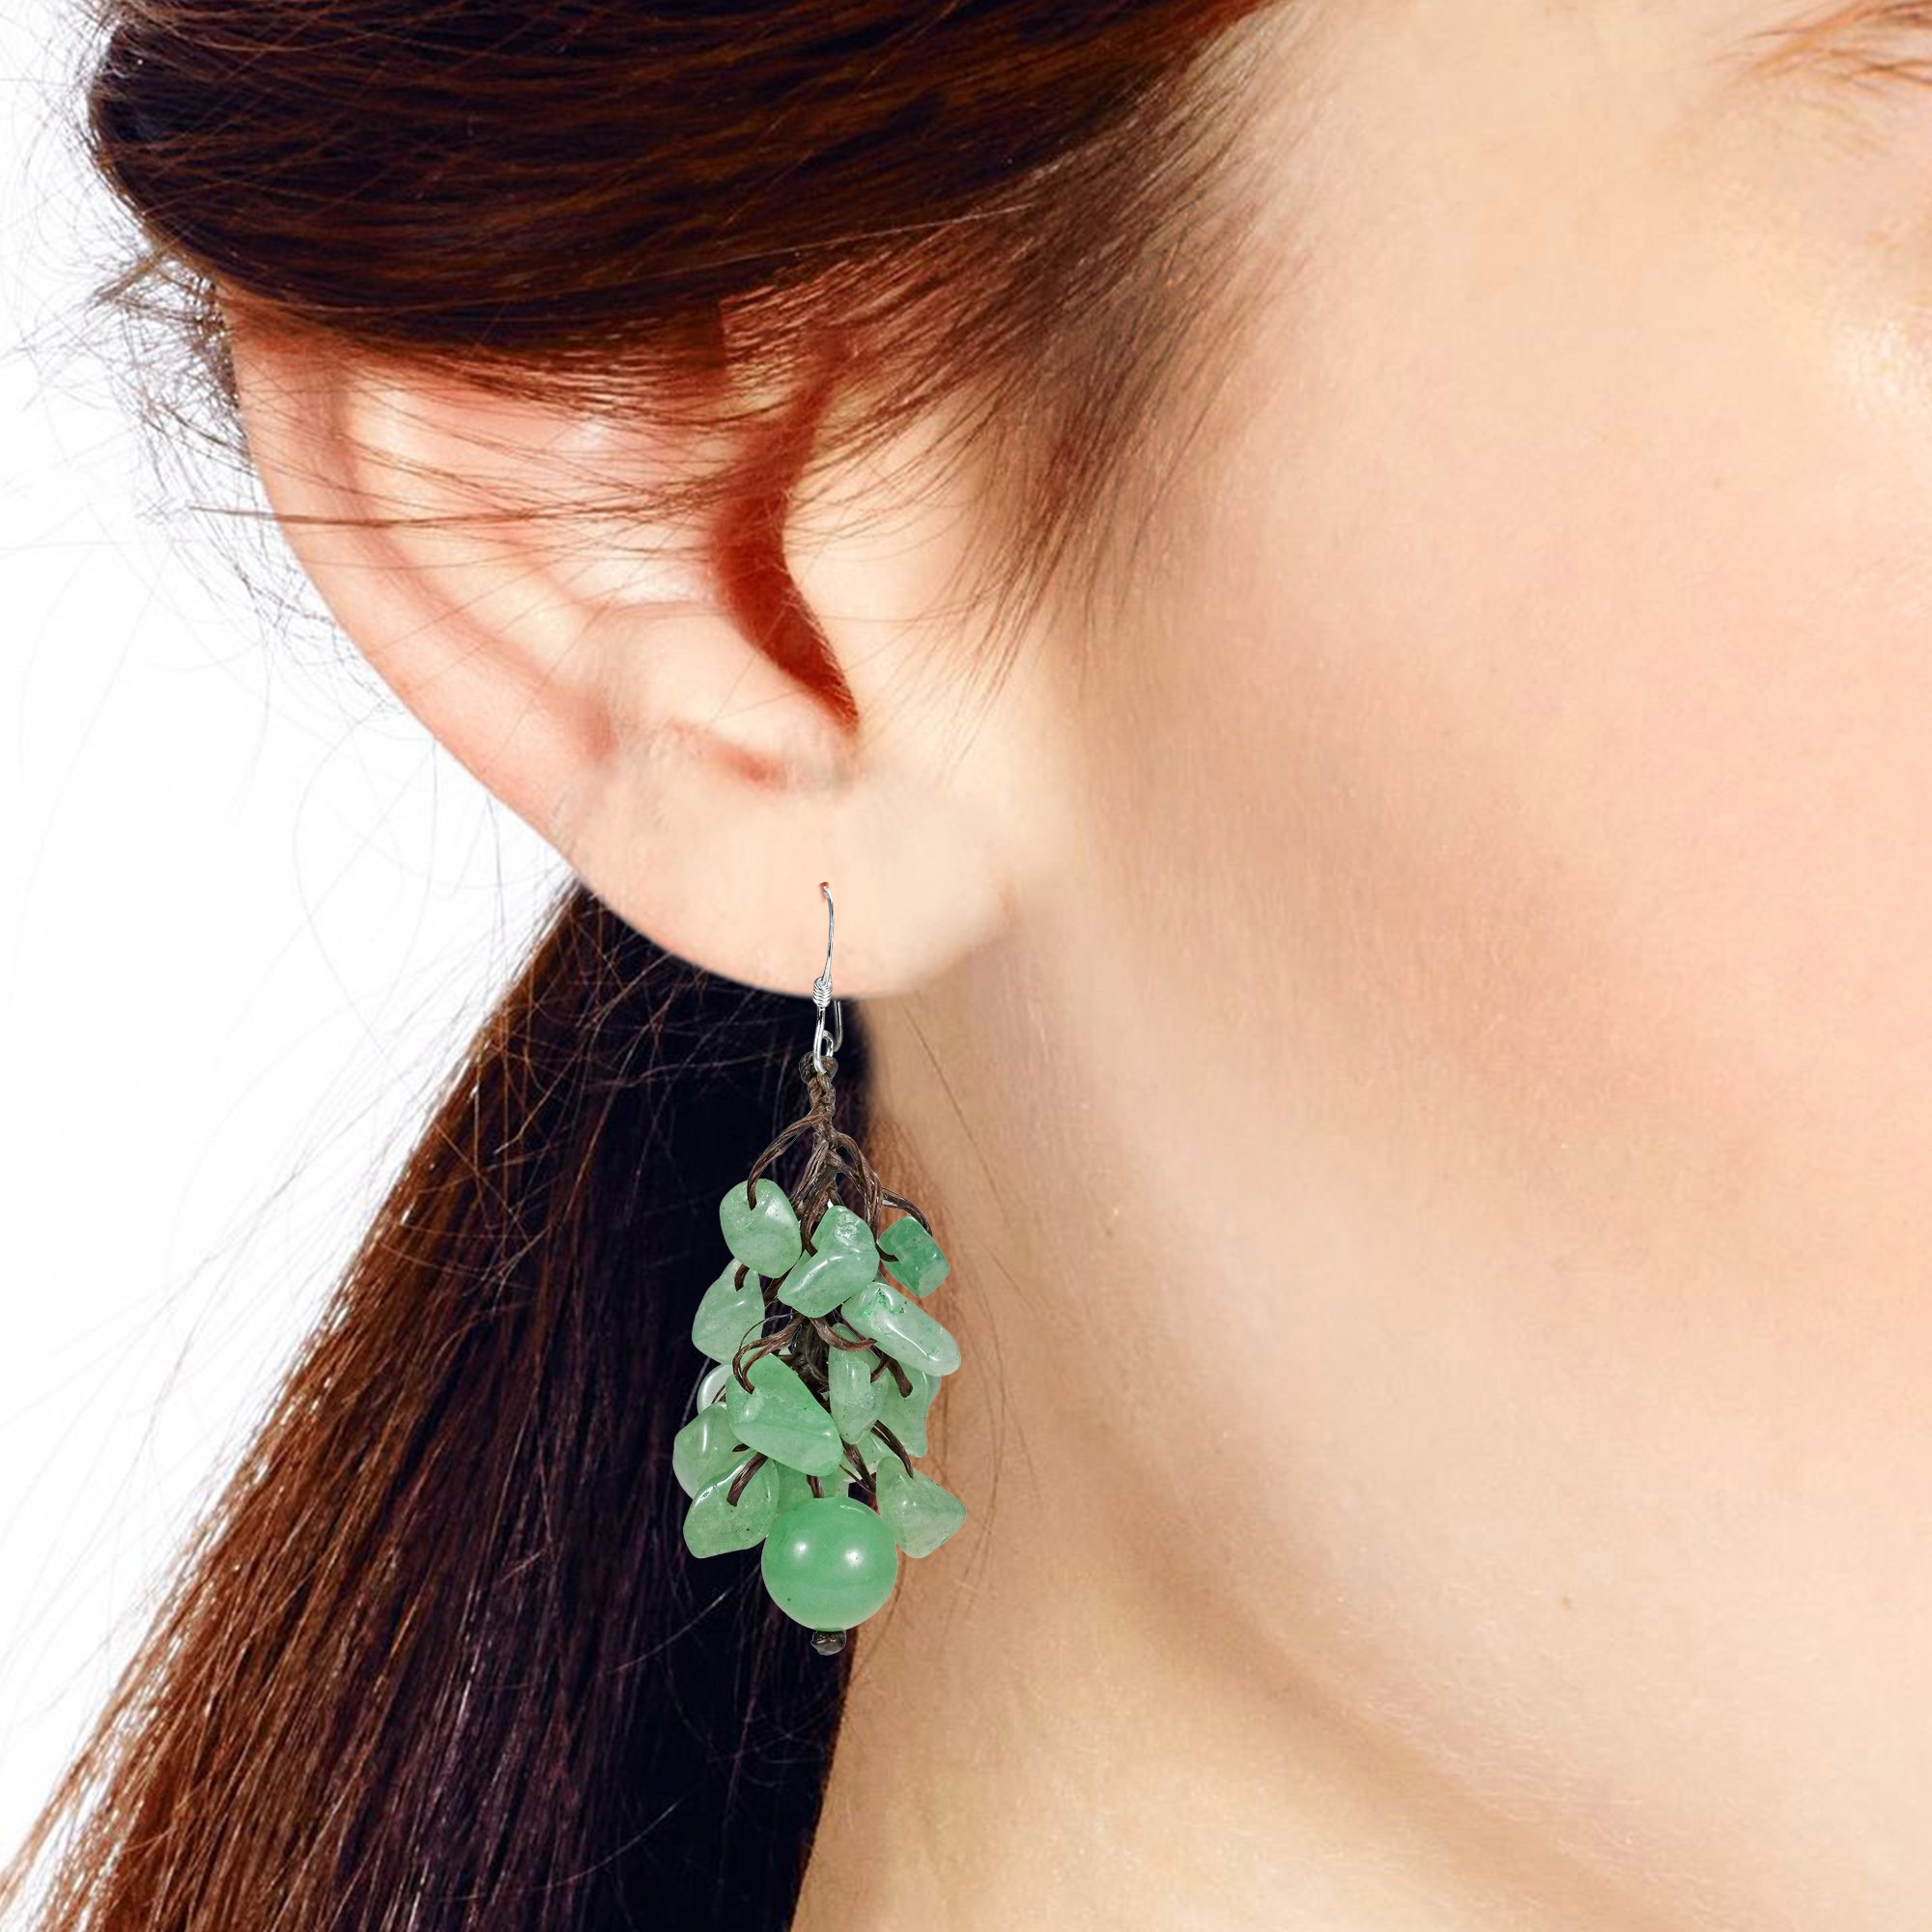 Dangle Cluster Ball Simulated Aventurine Sterling Silver Earrings by AeraVida (Image #4)